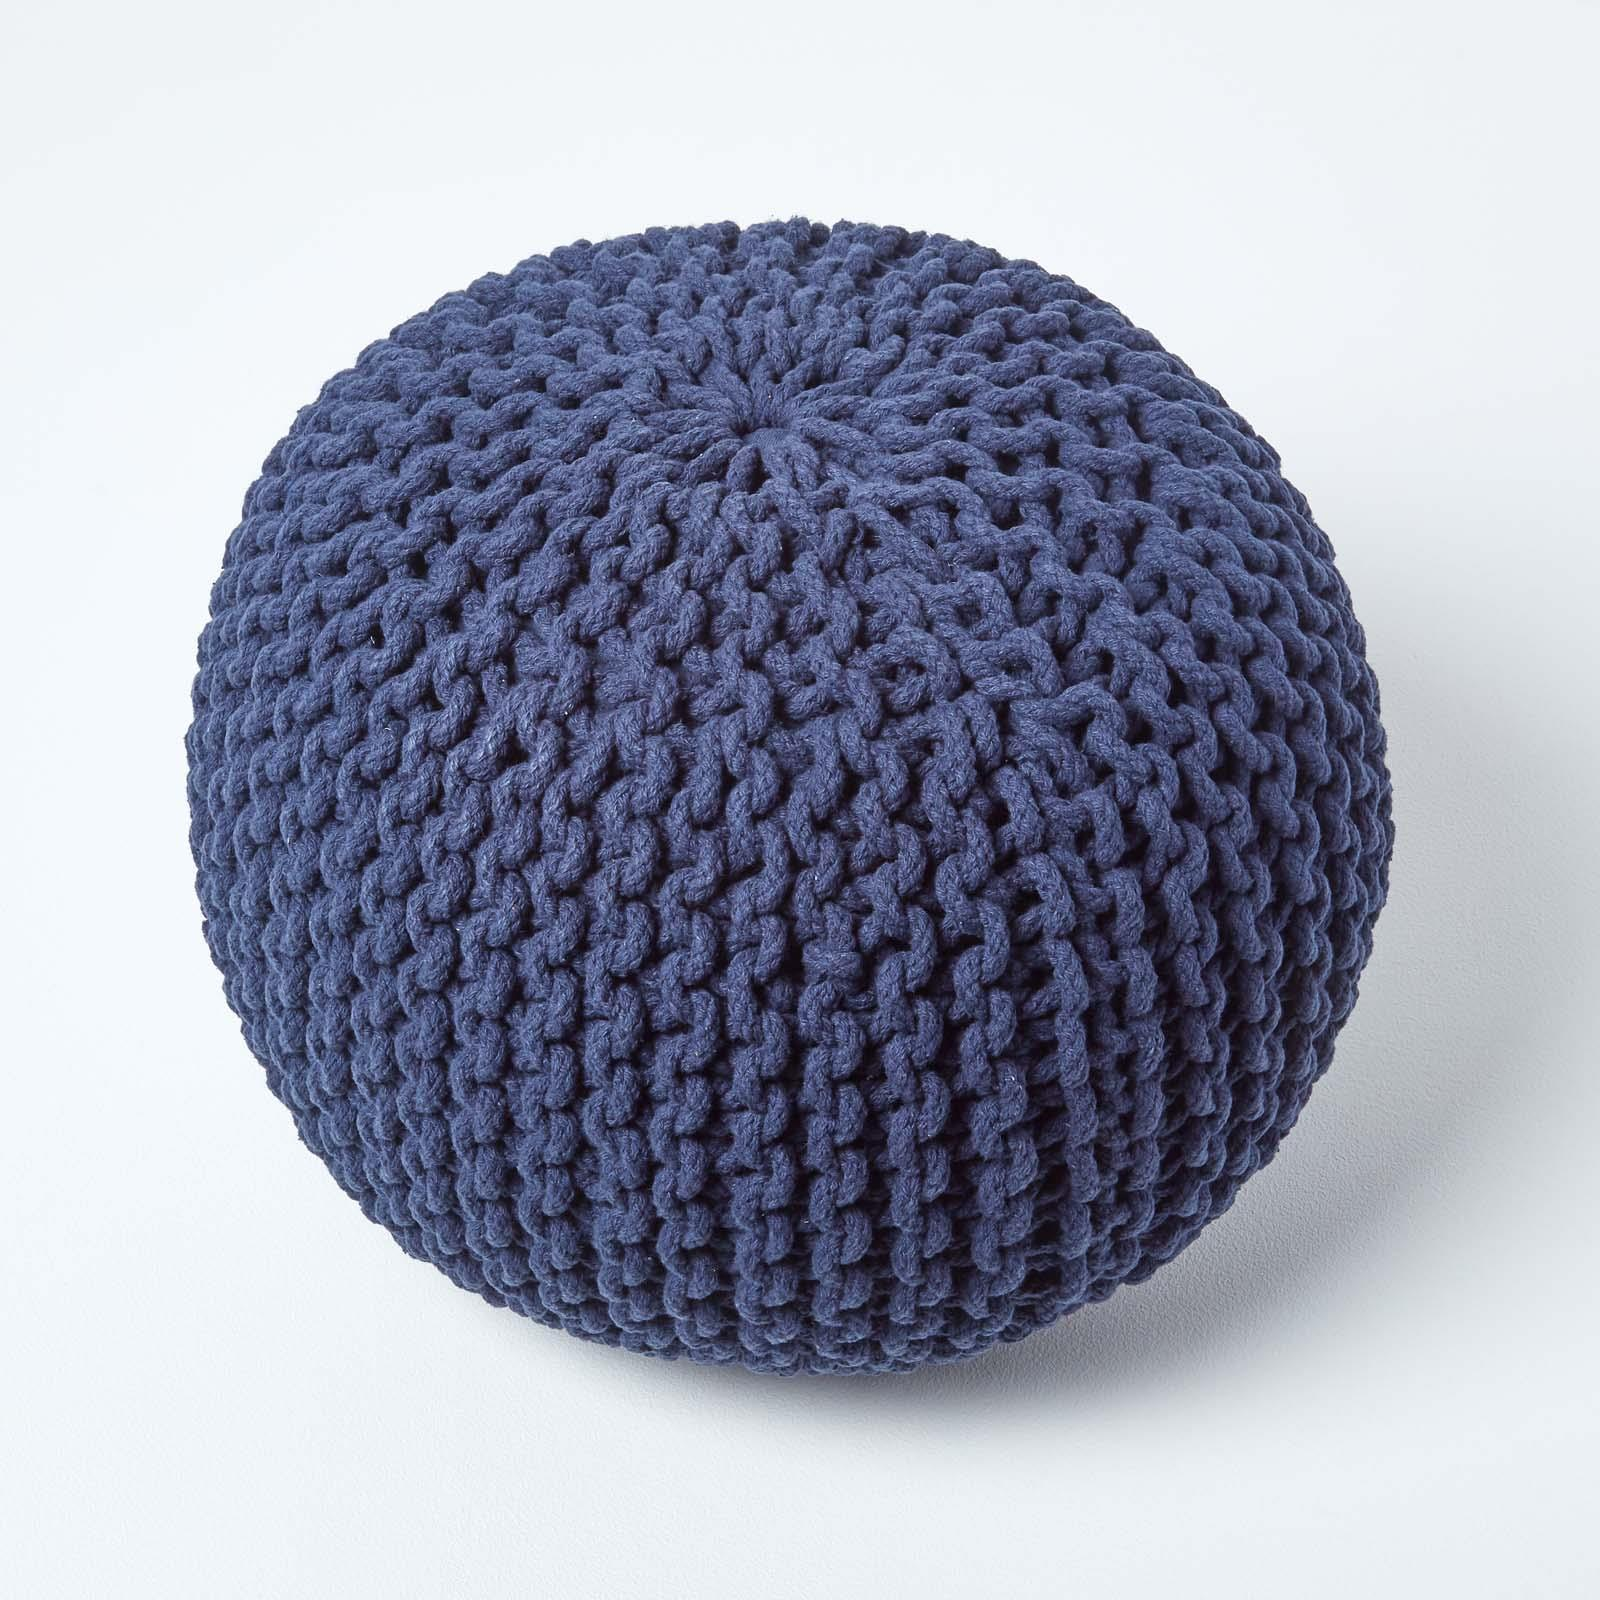 Hand-Knitted-100-Cotton-Pouffes-Round-Sphere-Or-Cube-Square-Chunky-Footstools thumbnail 106